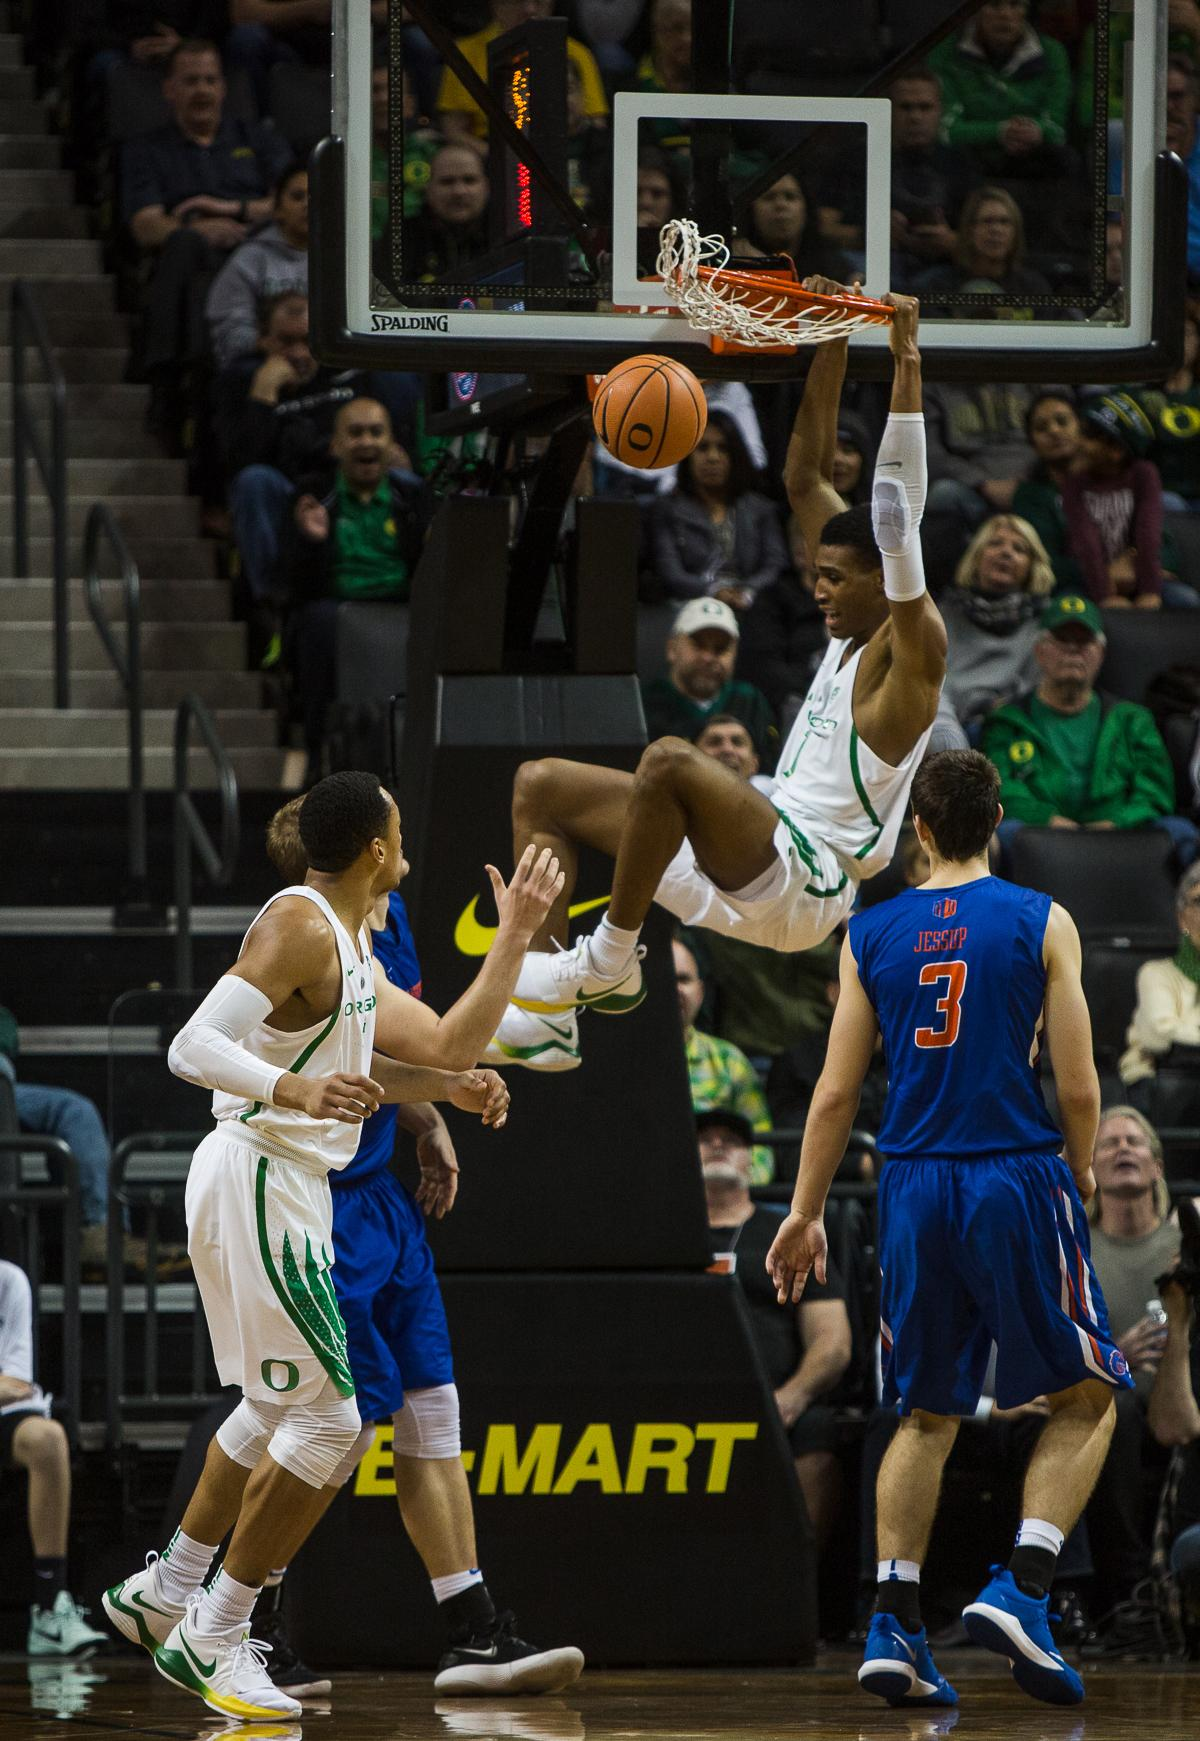 University of Oregon Duck Keith Smith (#11) dunks the ball against Boise State's Justinian Jessup (#3). The Boise State Broncos defeated the University of Oregon Ducks 73 – 70 at Matthew Knight Arena in Eugene, Ore., on December 1, 2017. Photo by Kit MacAvoy, Oregon News Lab